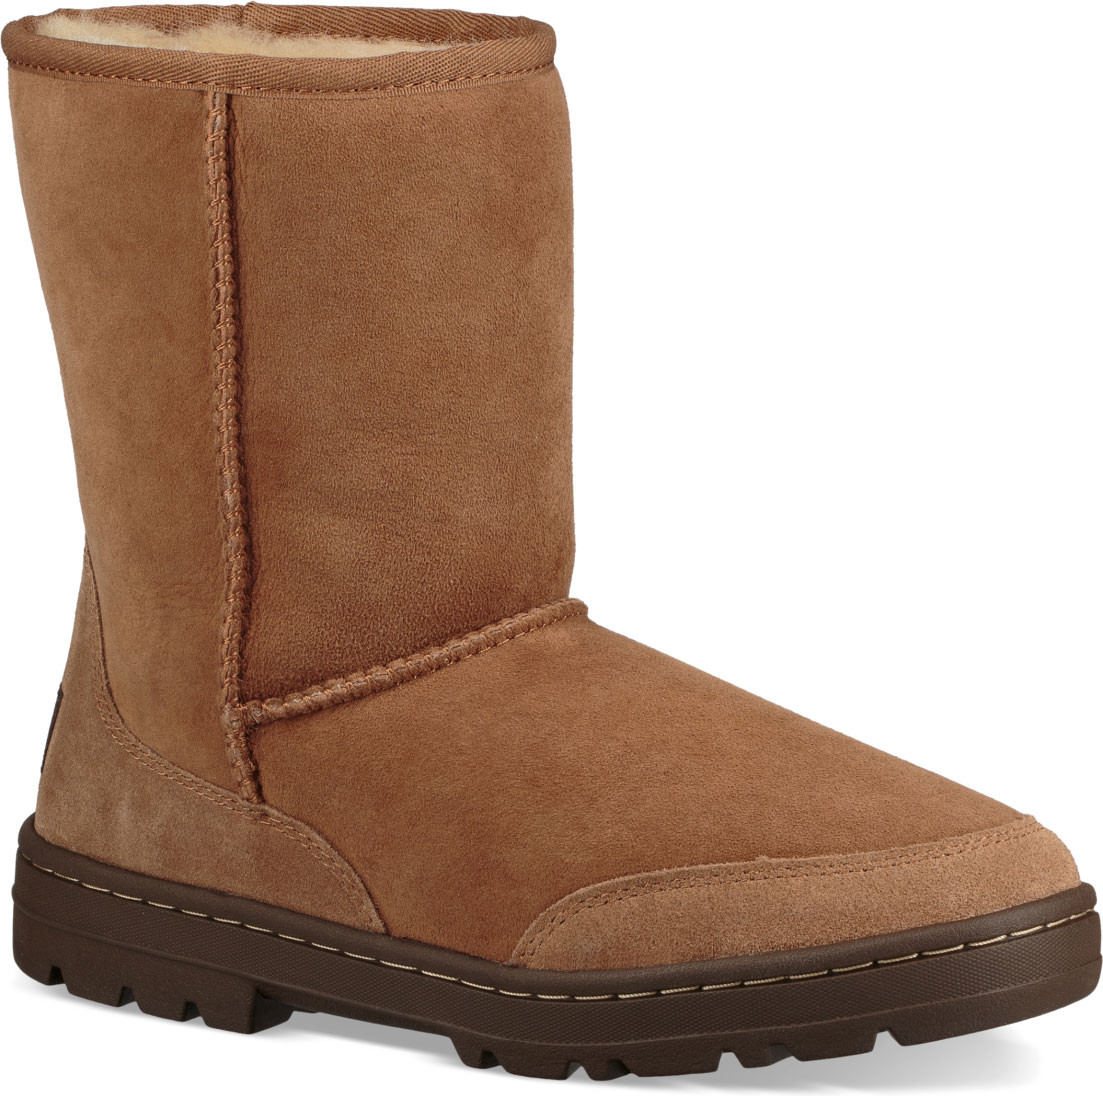 new products 30297 d4eb9 UGG Women's Ultra Short Revival